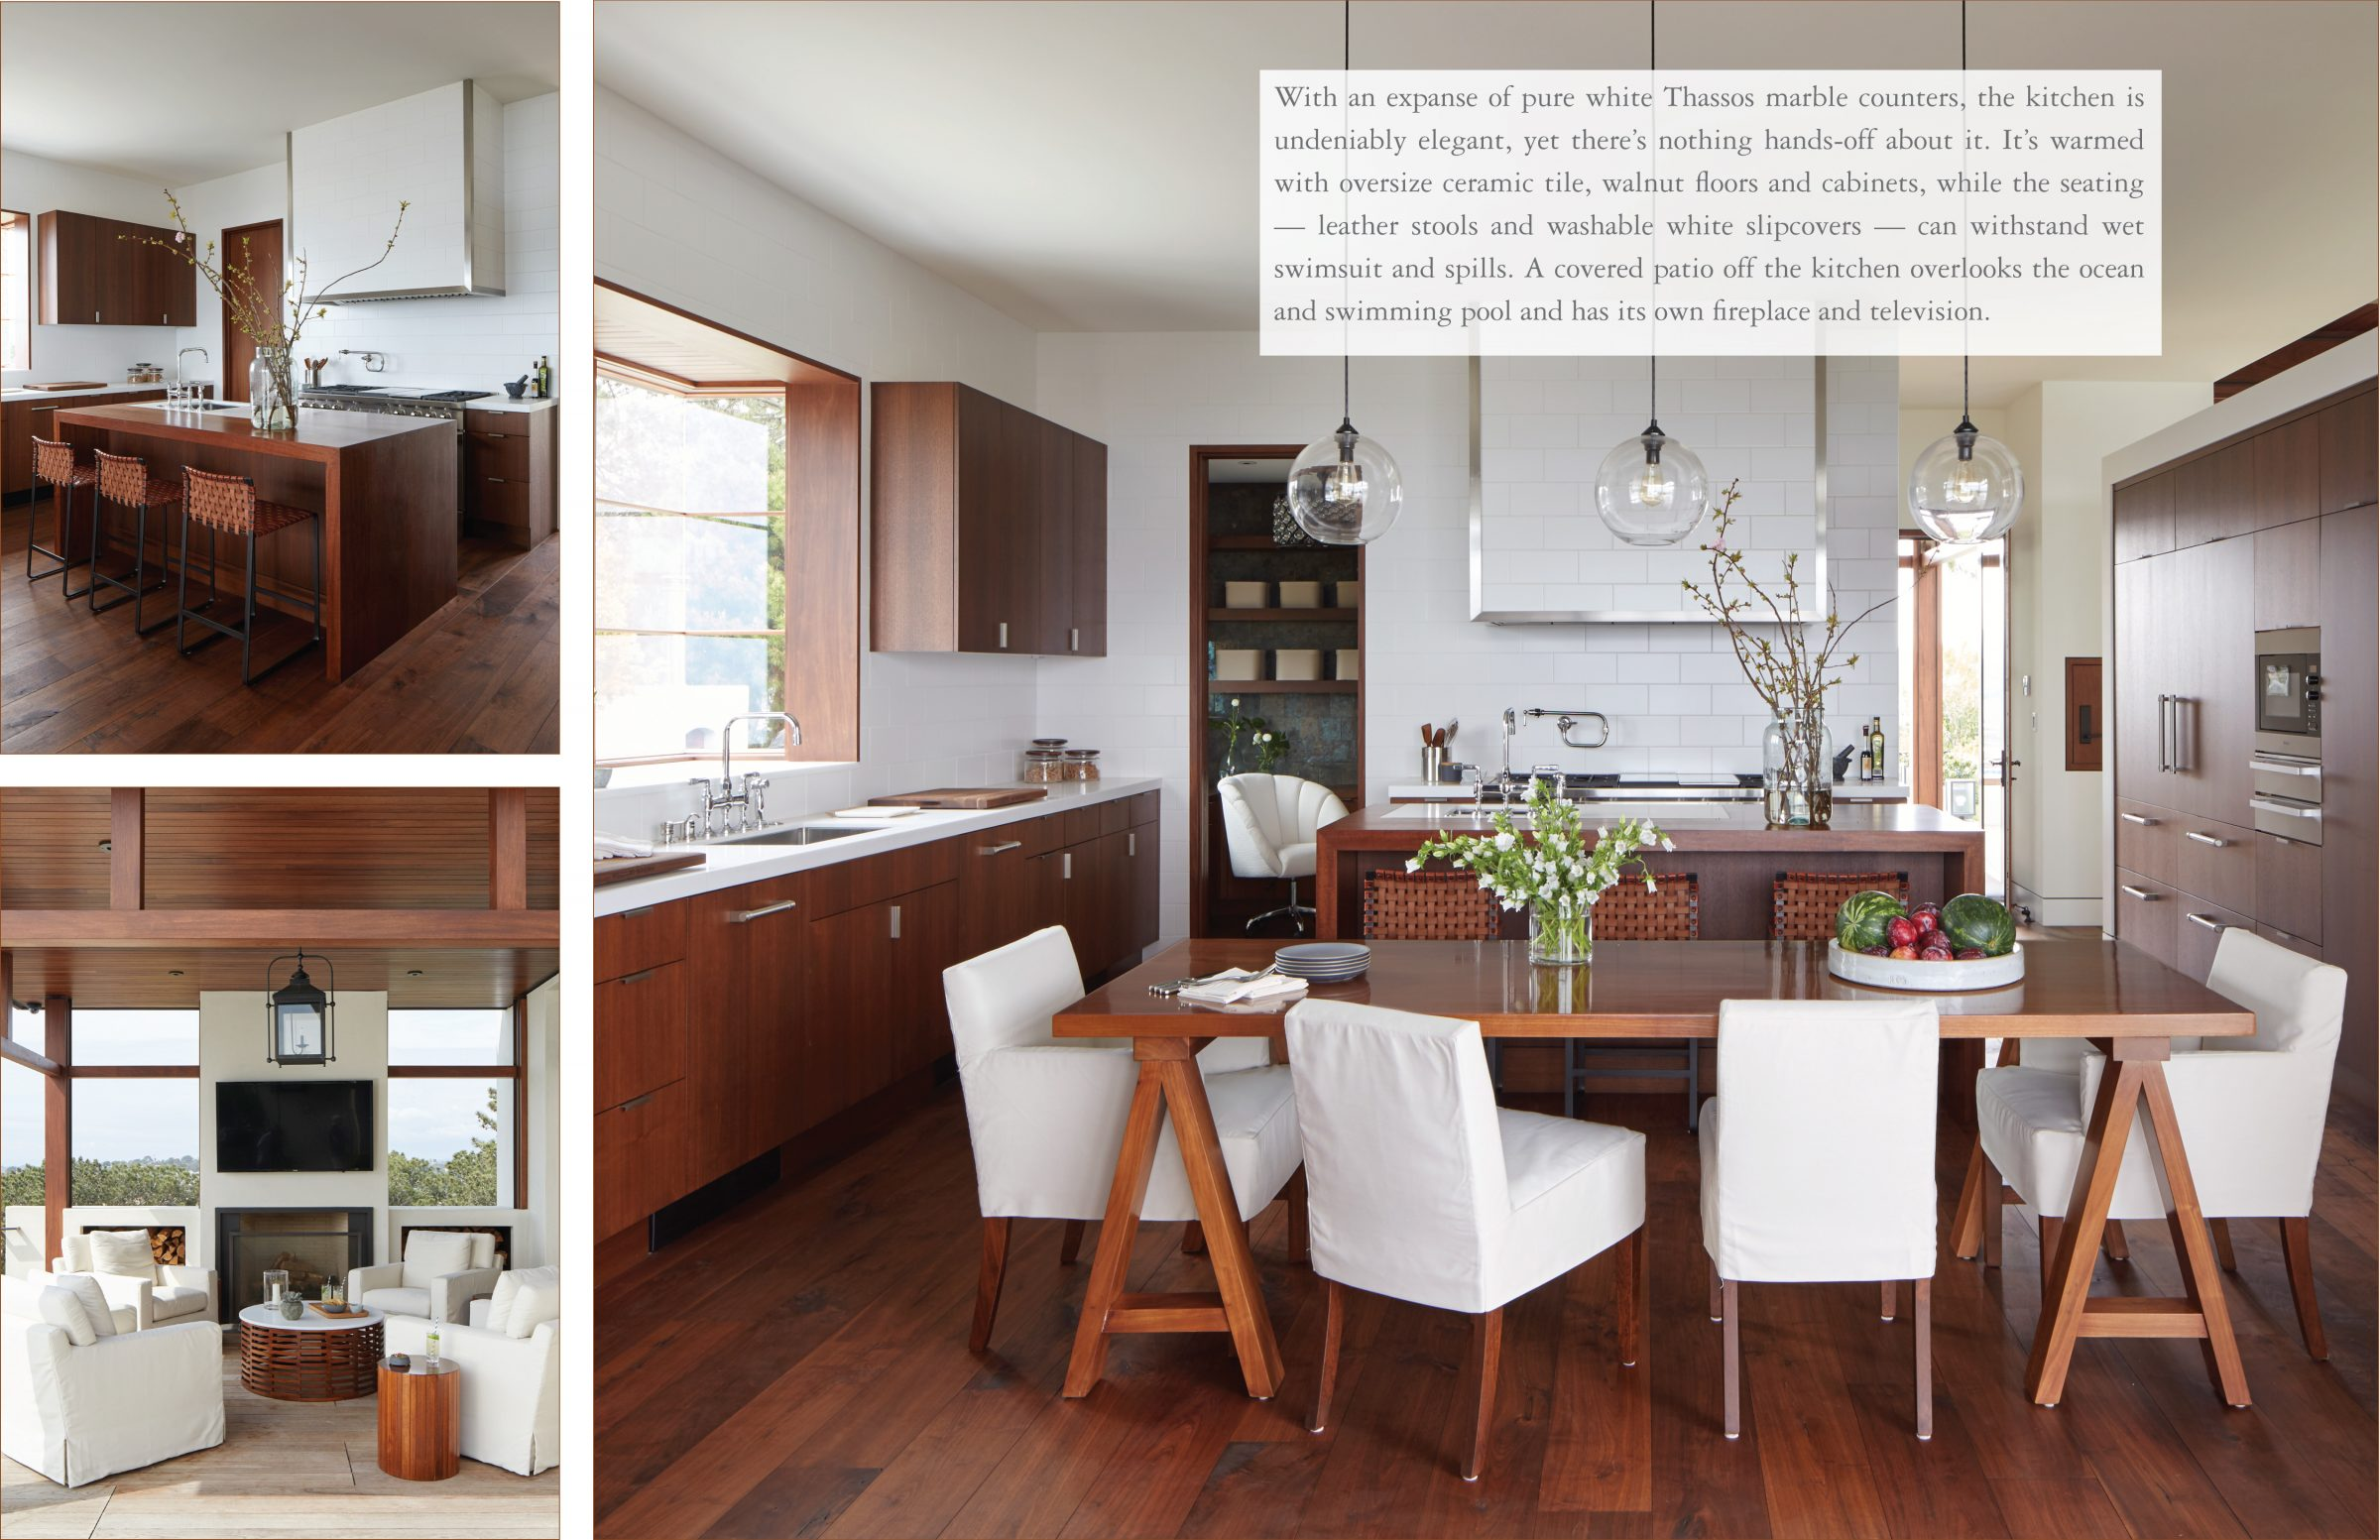 Beach Pretty Style: The Seaside House by Mark J. Williams..Take a Tour. The Pure White Counter Top is from   Thassos Marble  .